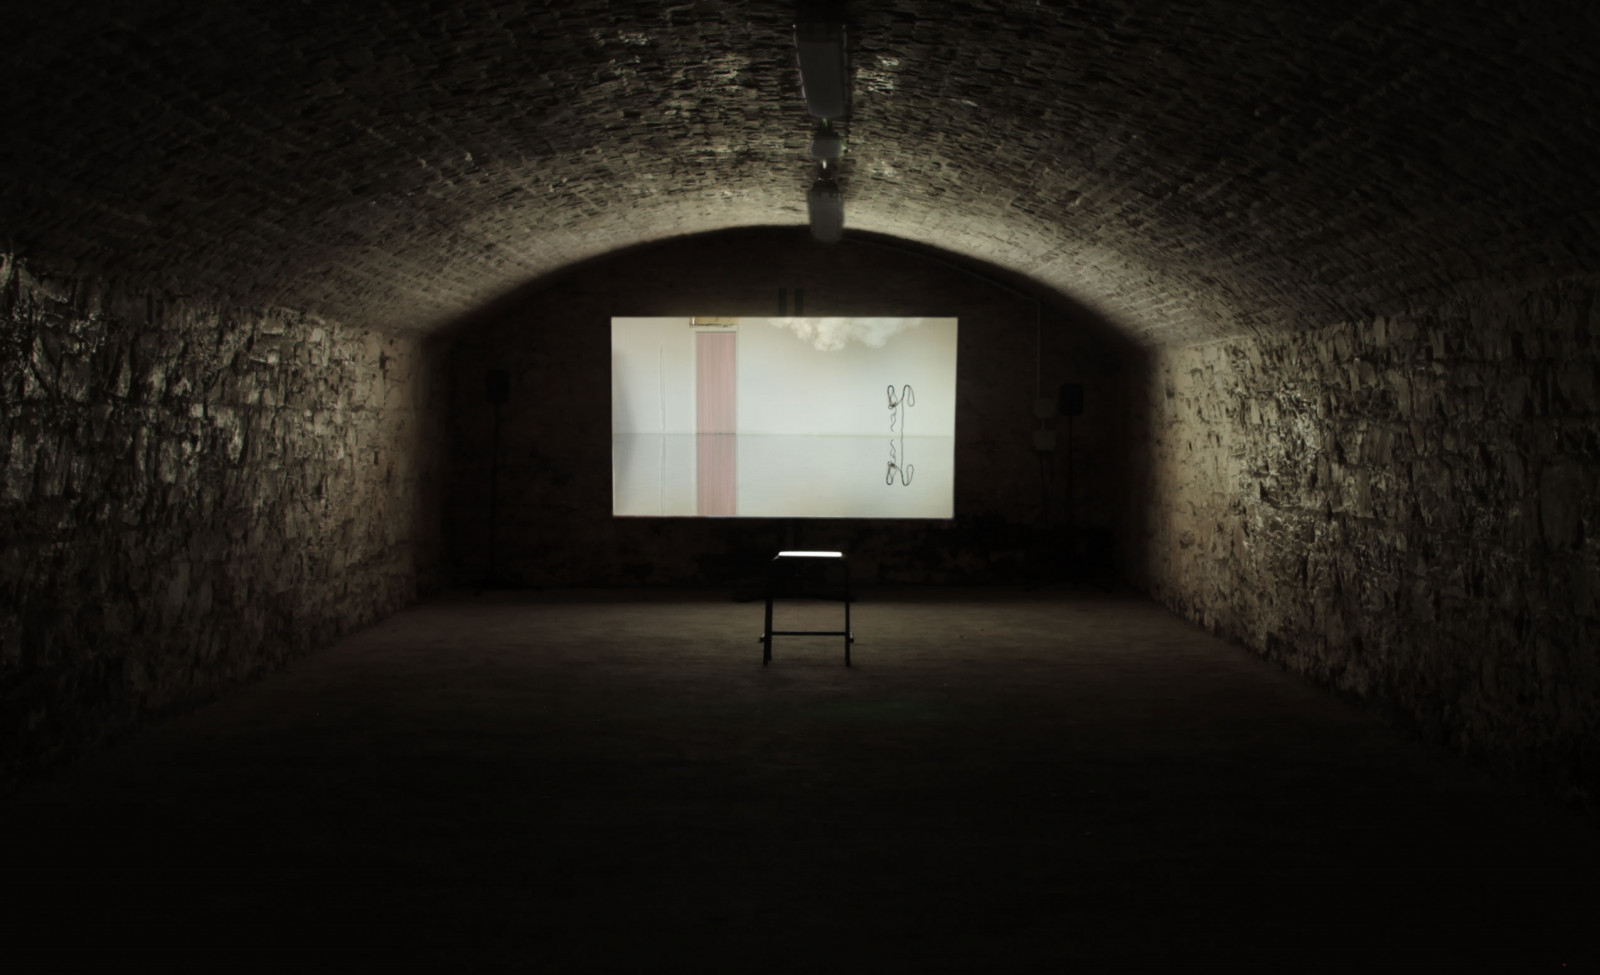 Installation view in Cork Bonded Warehouses, as part of Sounds from a Safe Harbour, Cork, 2015